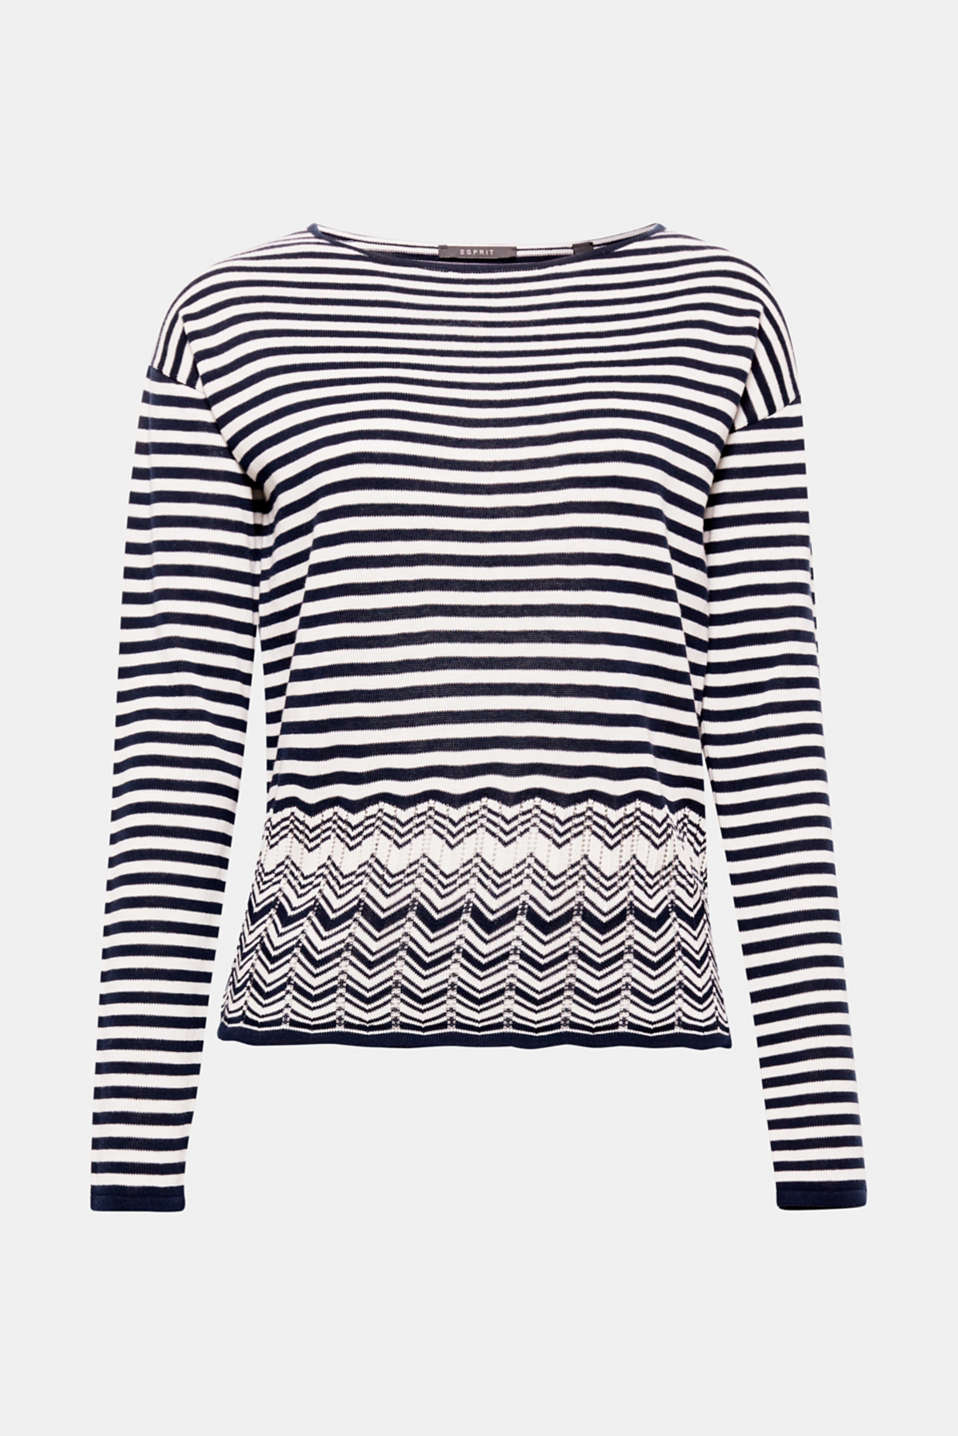 Our dearly loved stripes are made new: appliquéd with a modern zigzag pattern on a sporty knit!